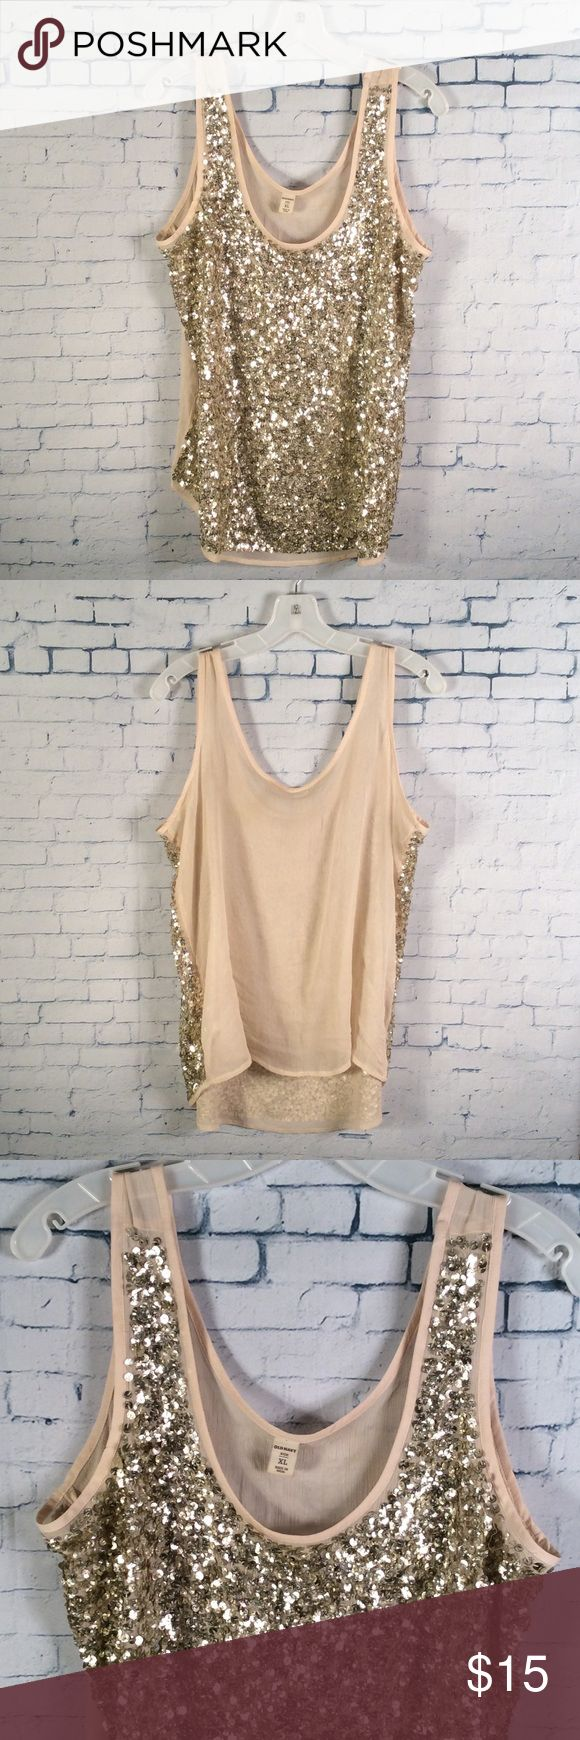 Old Navy Sequin Tank Top Size XL Old Navy Sequin Tank Top. Size XL great condition. Perfect for the up coming holiday season. Old Navy Tops Tank Tops